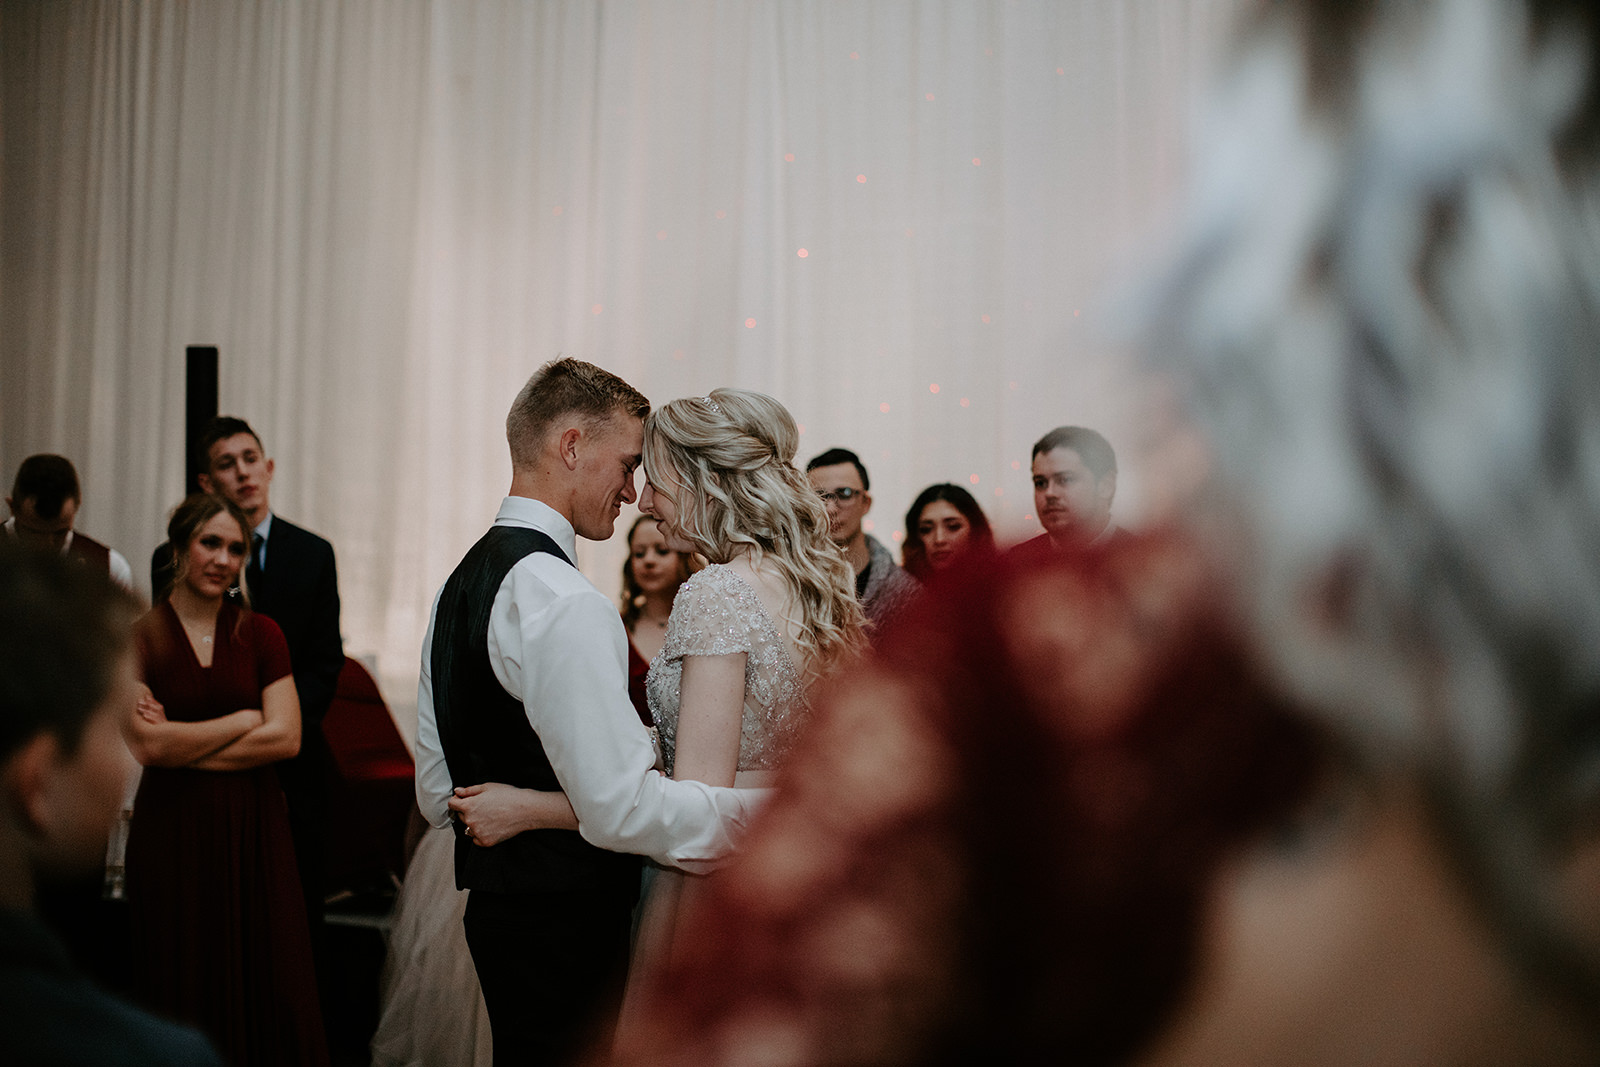 Older woman blurred in foreground looking at bride and groom in focus while dancing